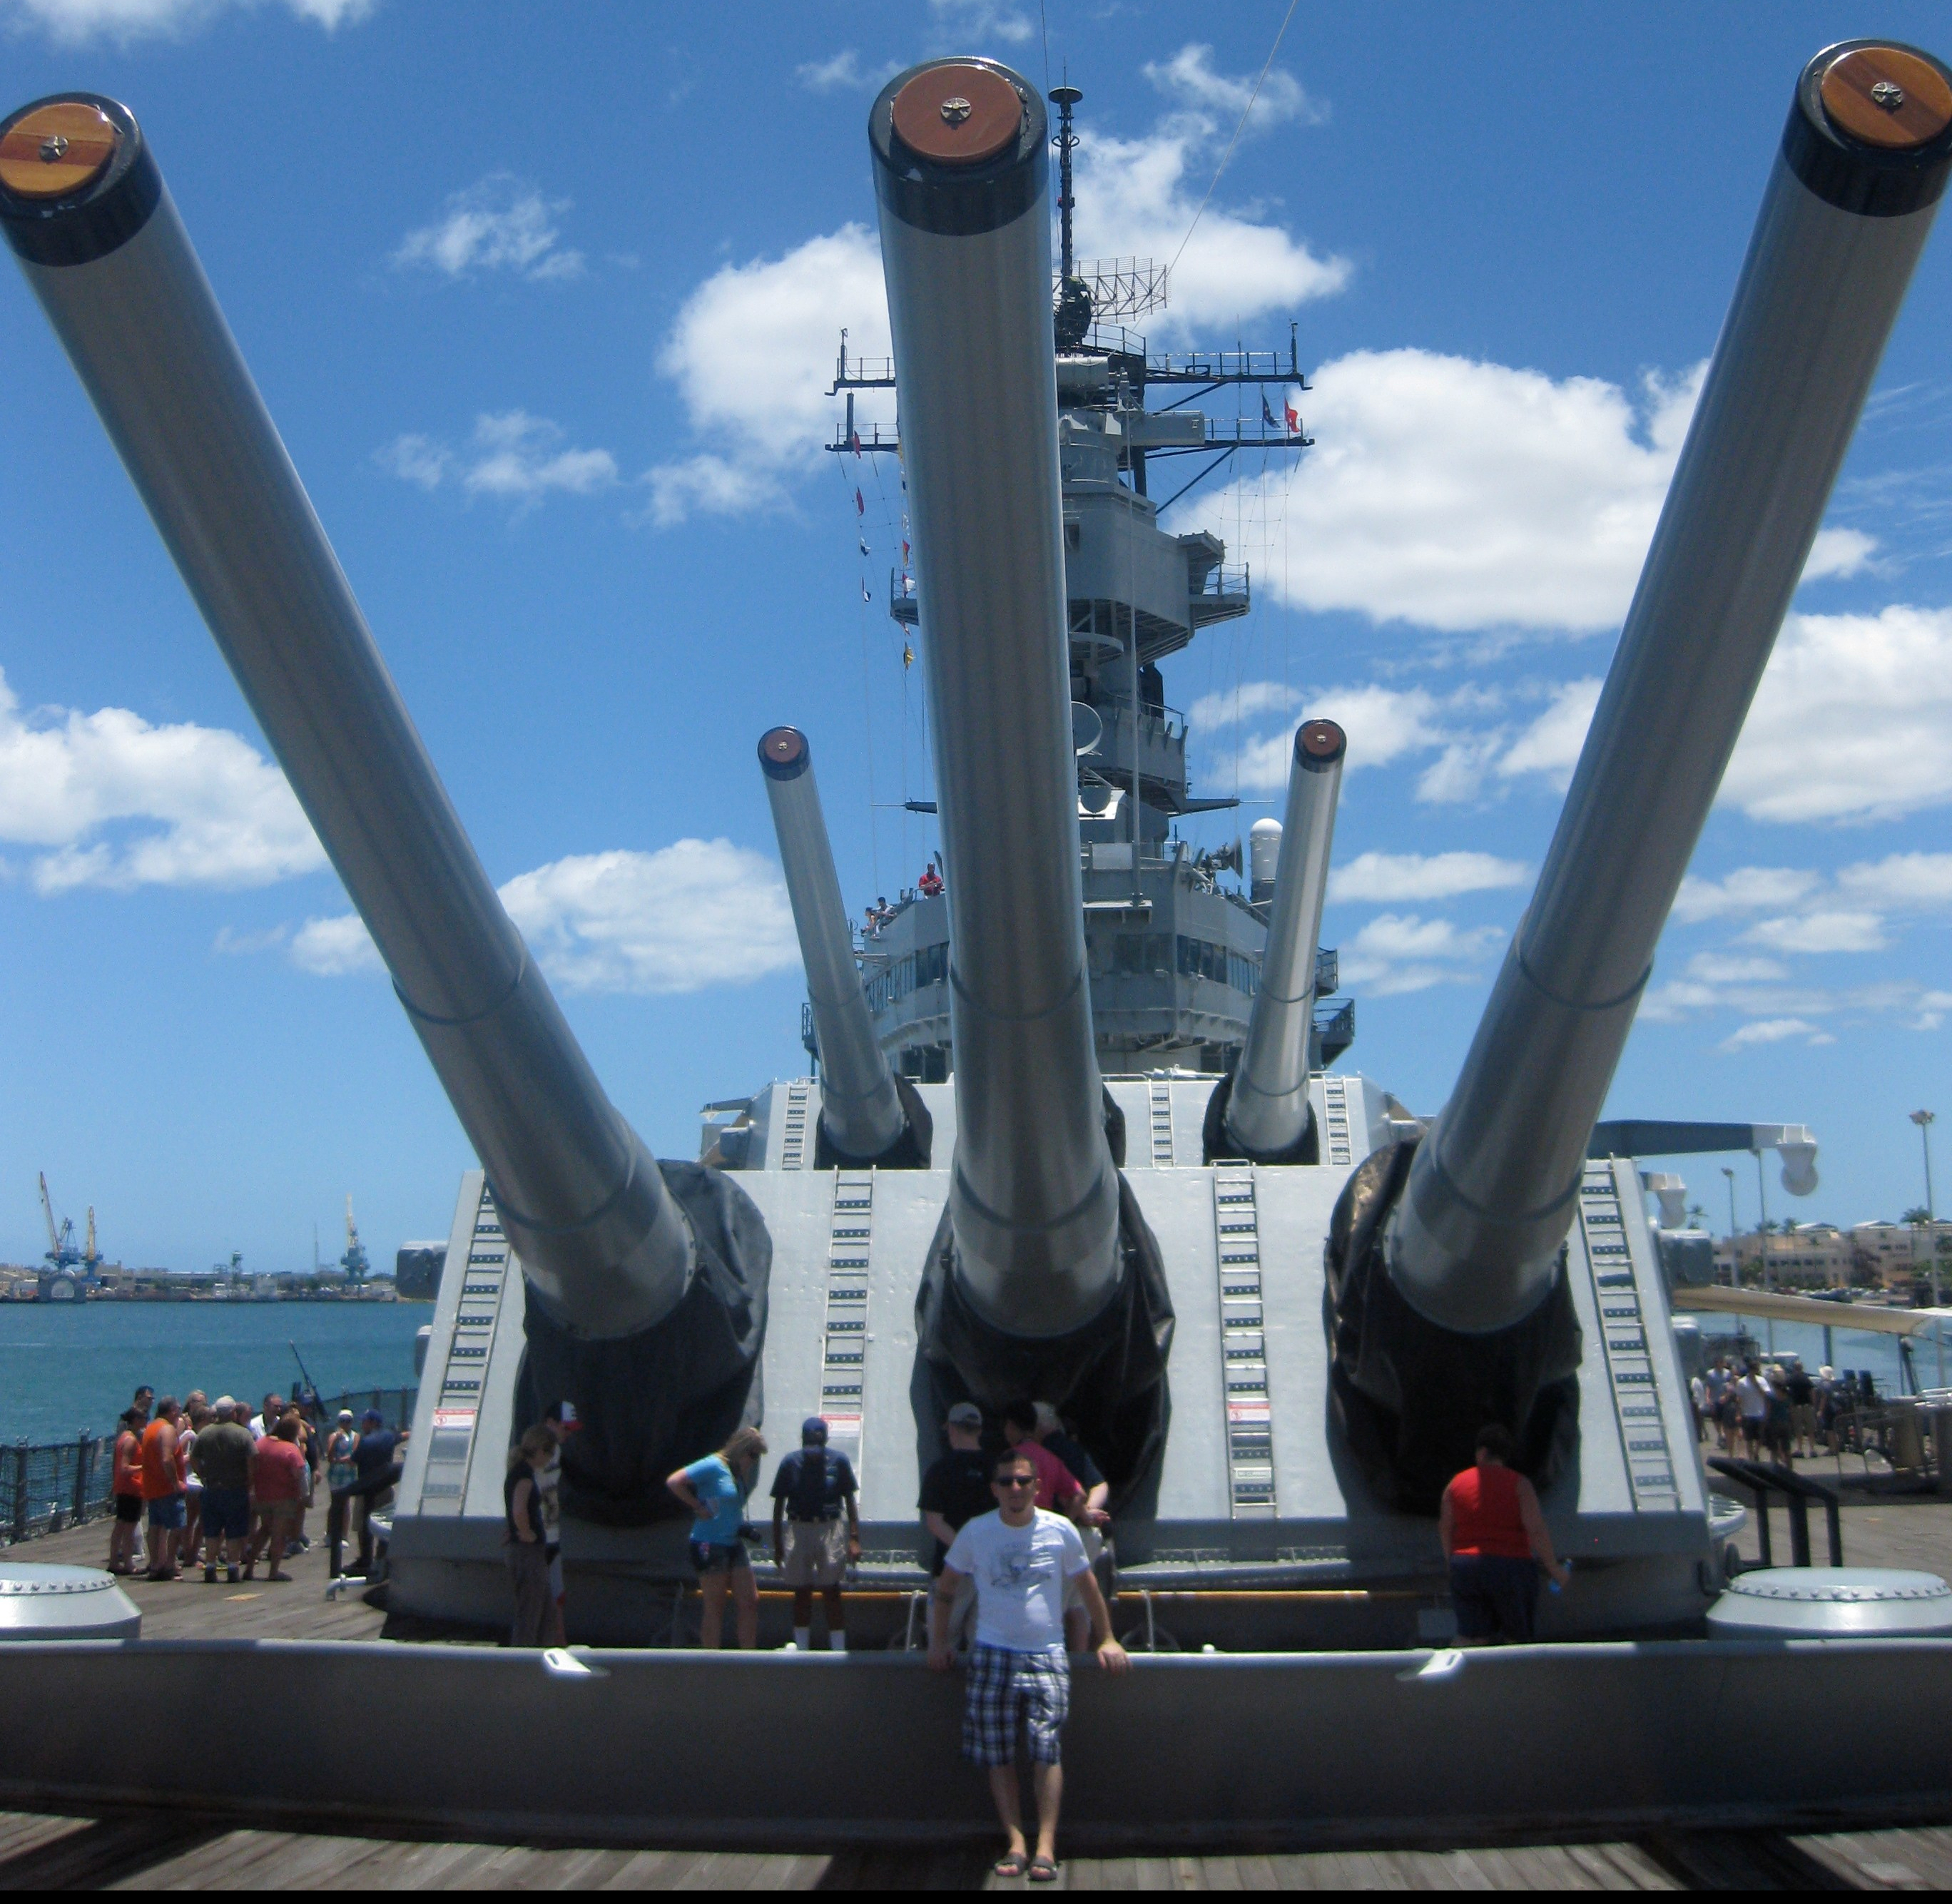 Battleship Missouri Memorial – Experience the location of the ending of WWII.